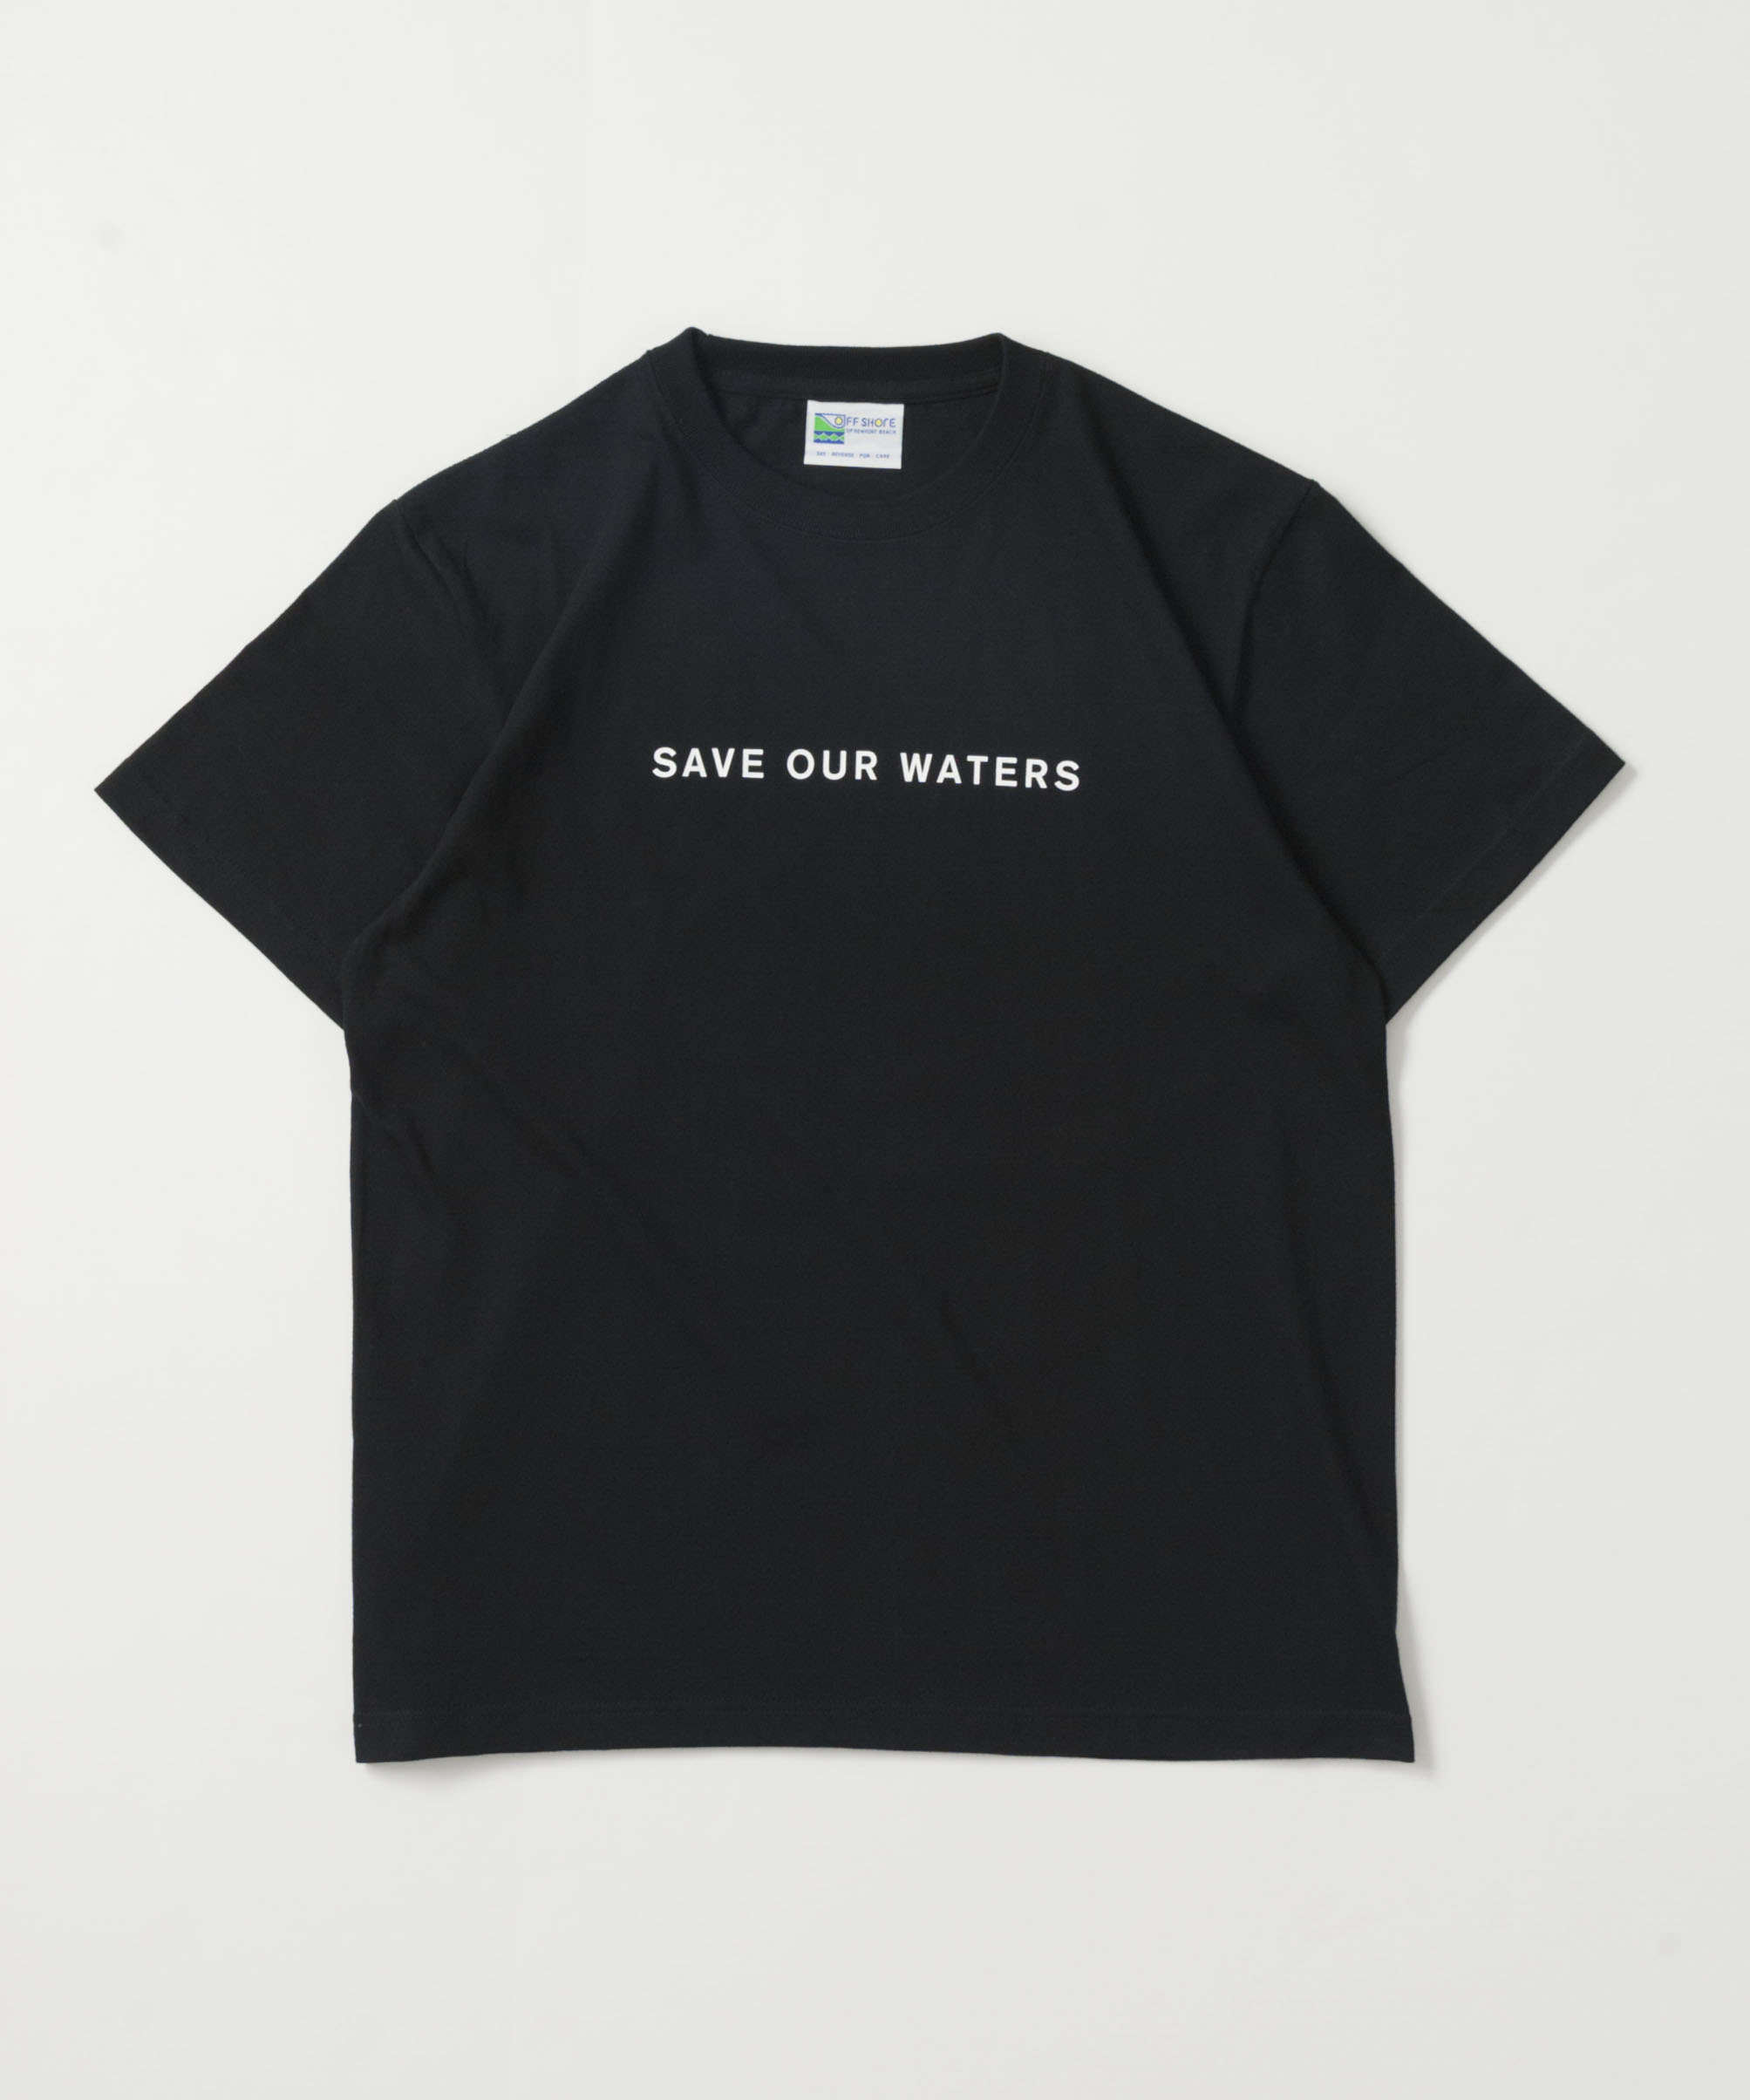 SAVE OUR WATERS TEE